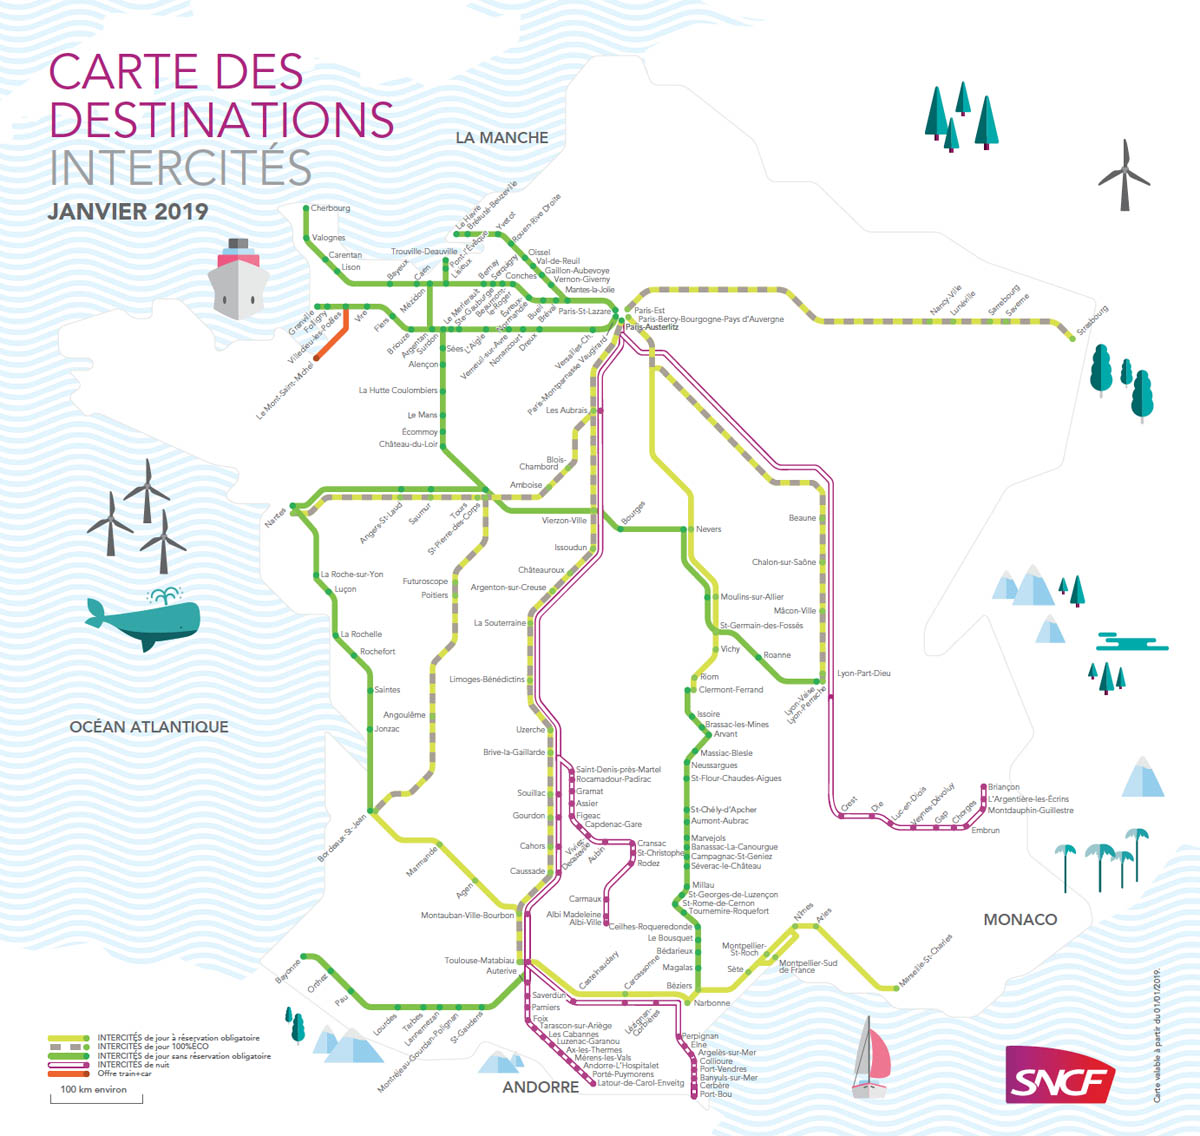 mapa intercites francia